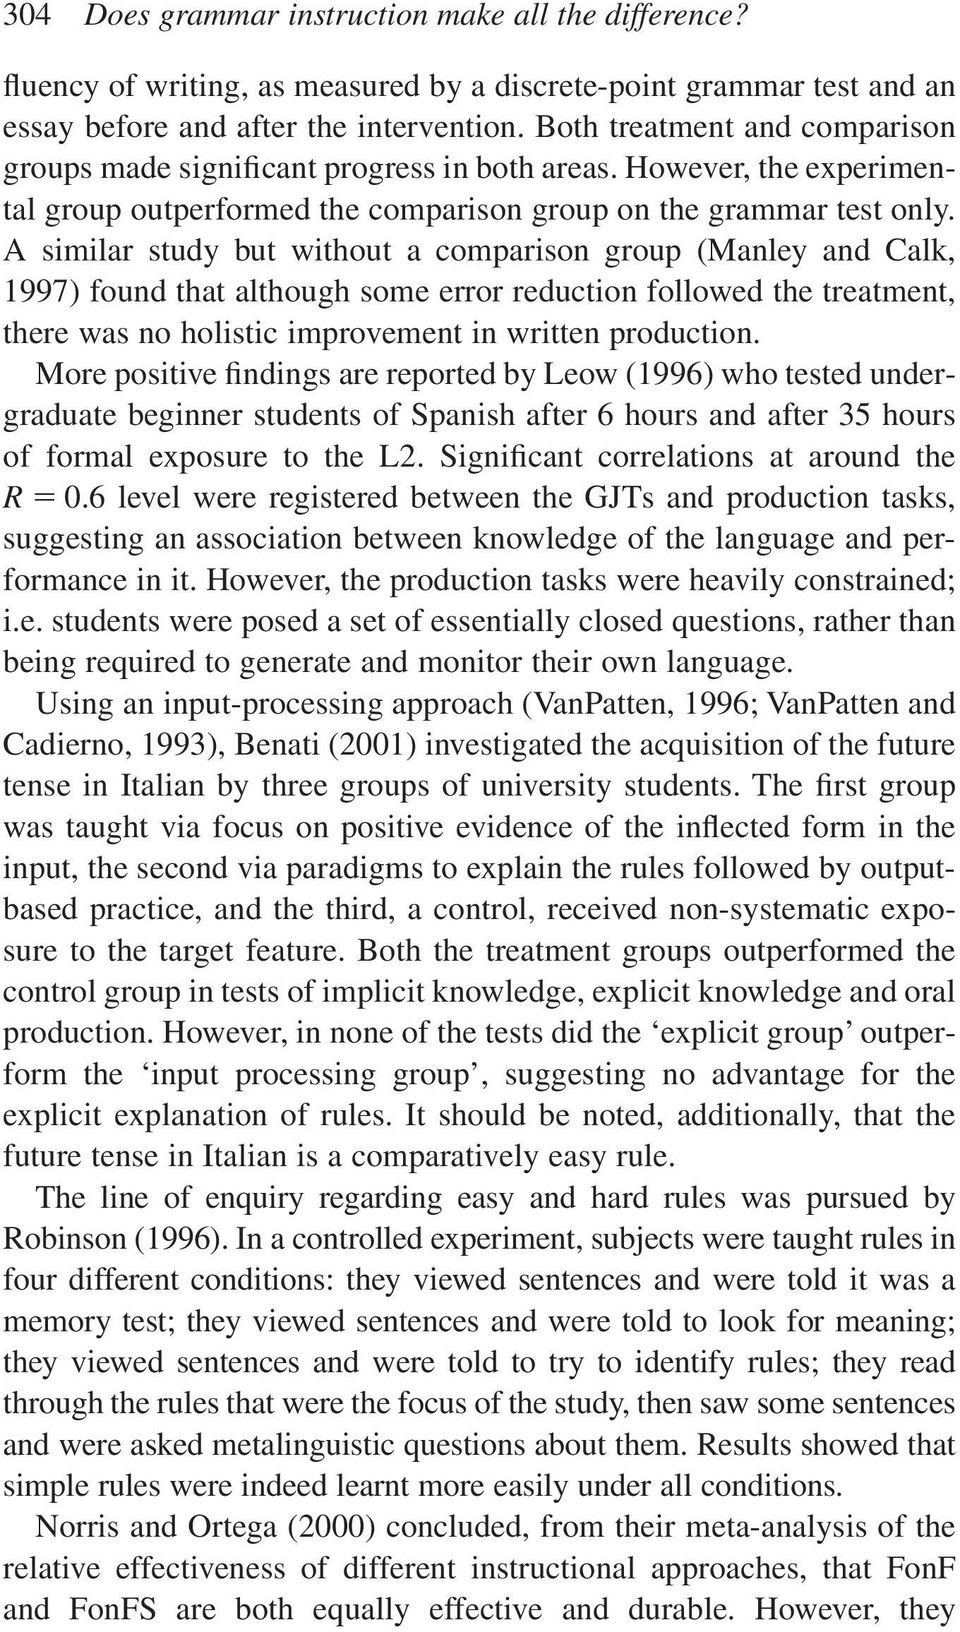 A similar study but without a comparison group (Manley and Calk, 1997) found that although some error reduction followed the treatment, there was no holistic improvement in written production.